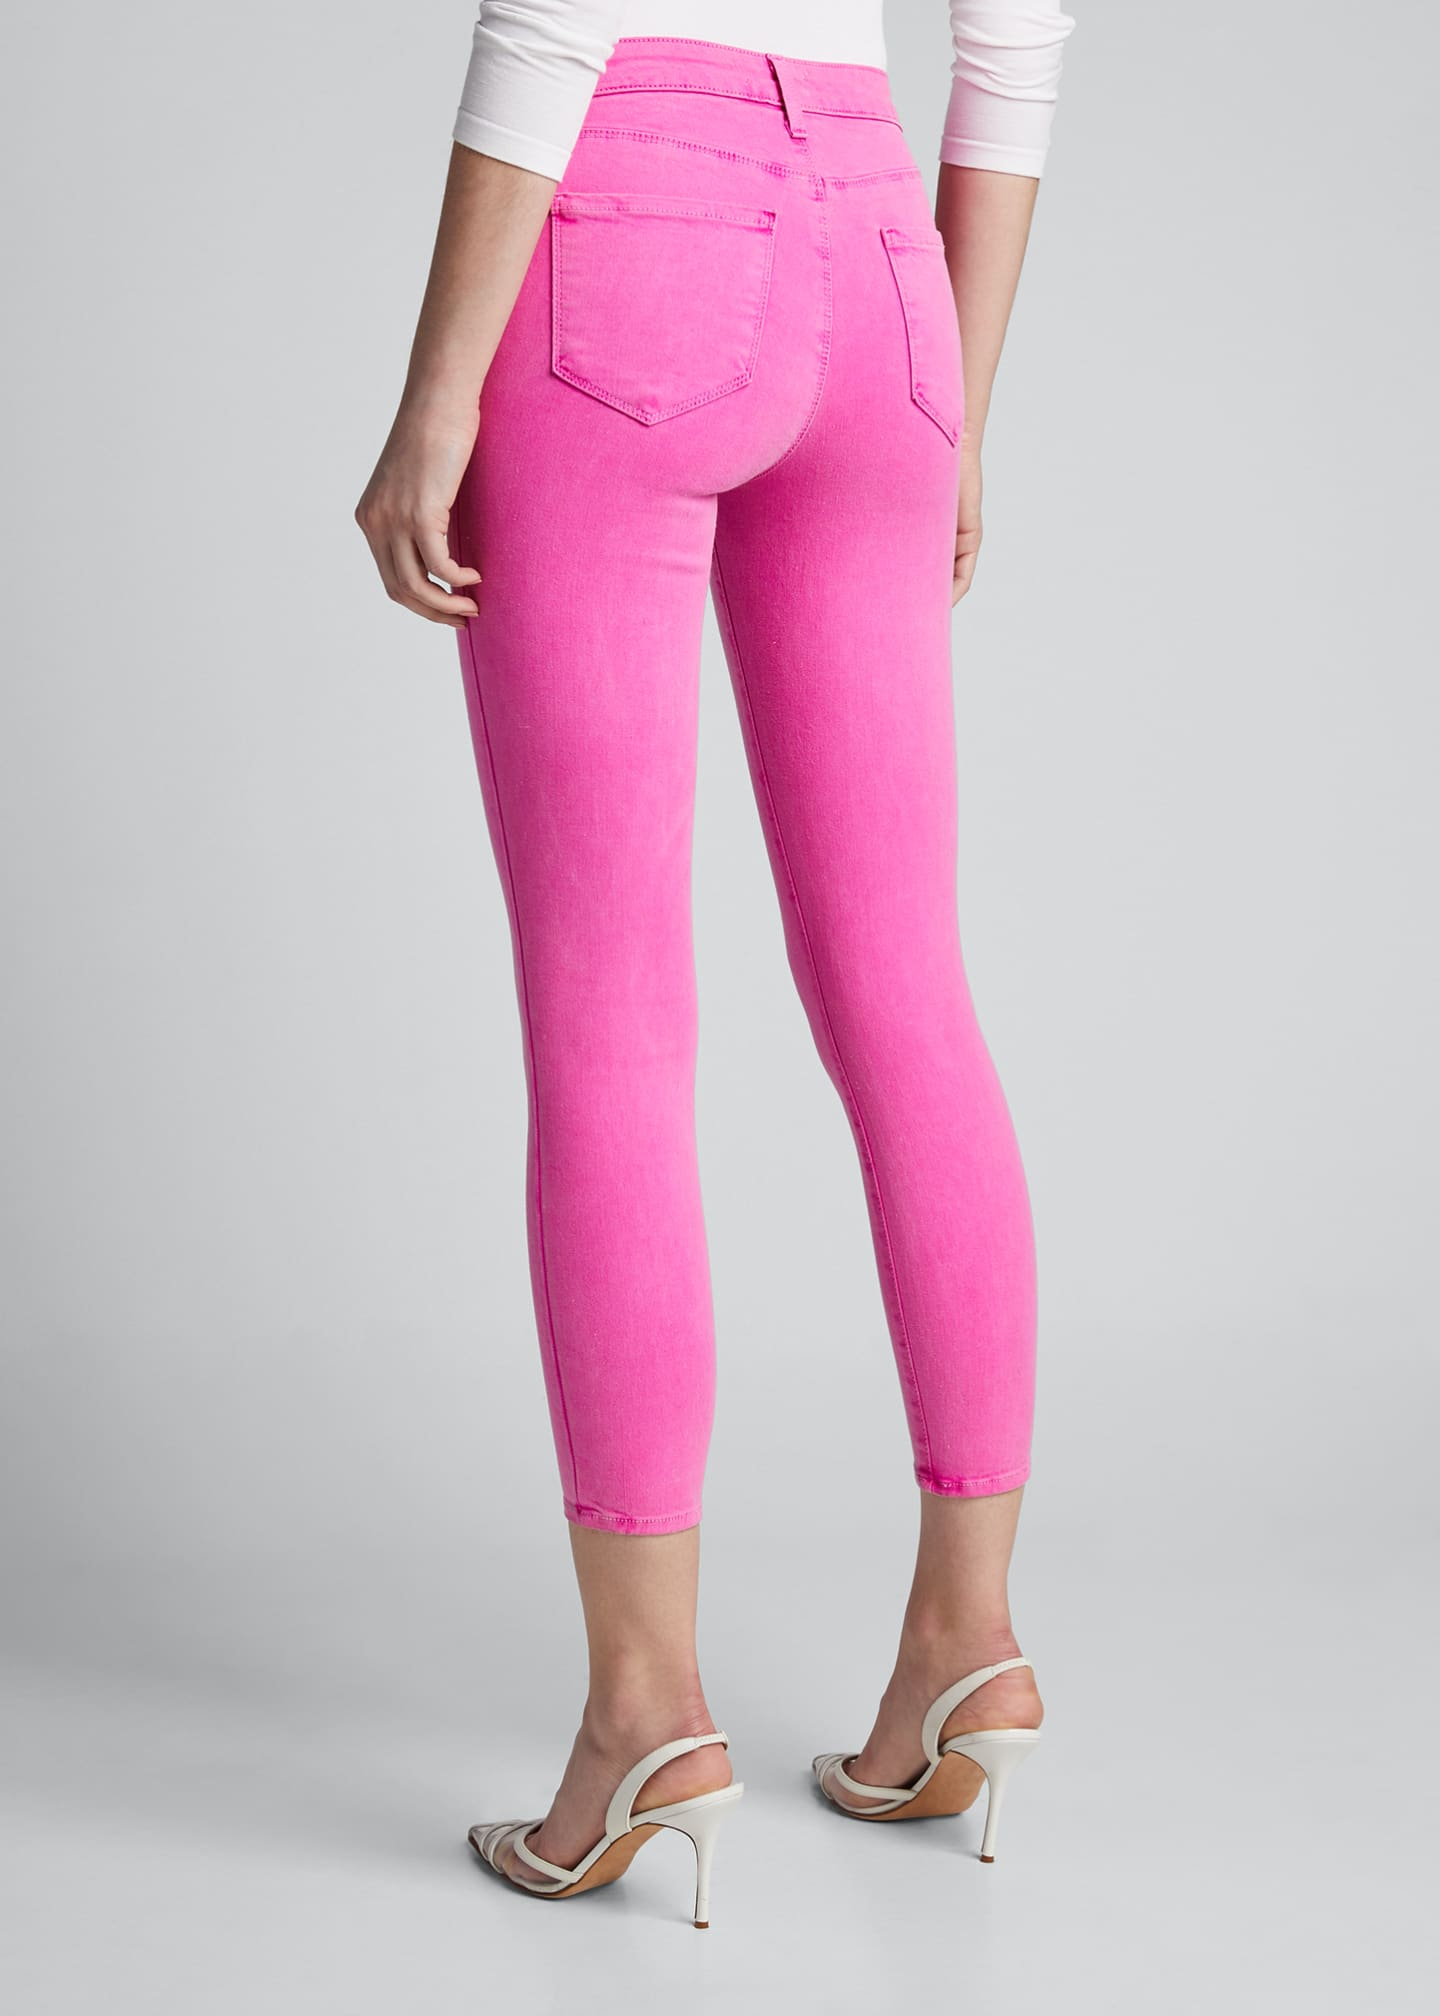 Image 2 of 2: Margot High-Rise Skinny Ankle Jeans